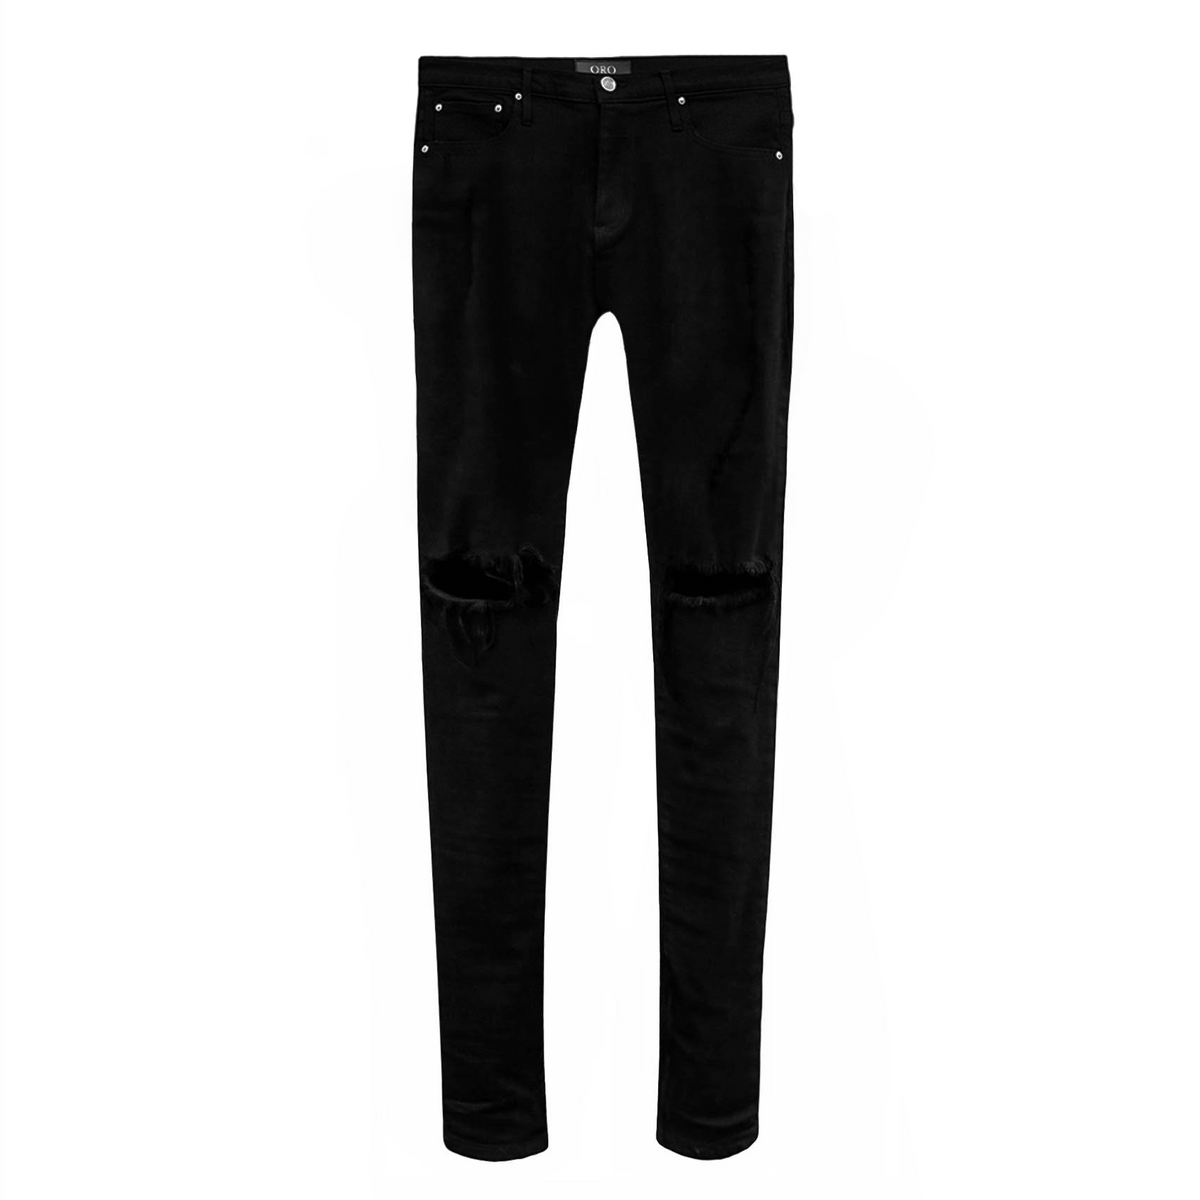 THE NOIR EVERYDAY DENIM